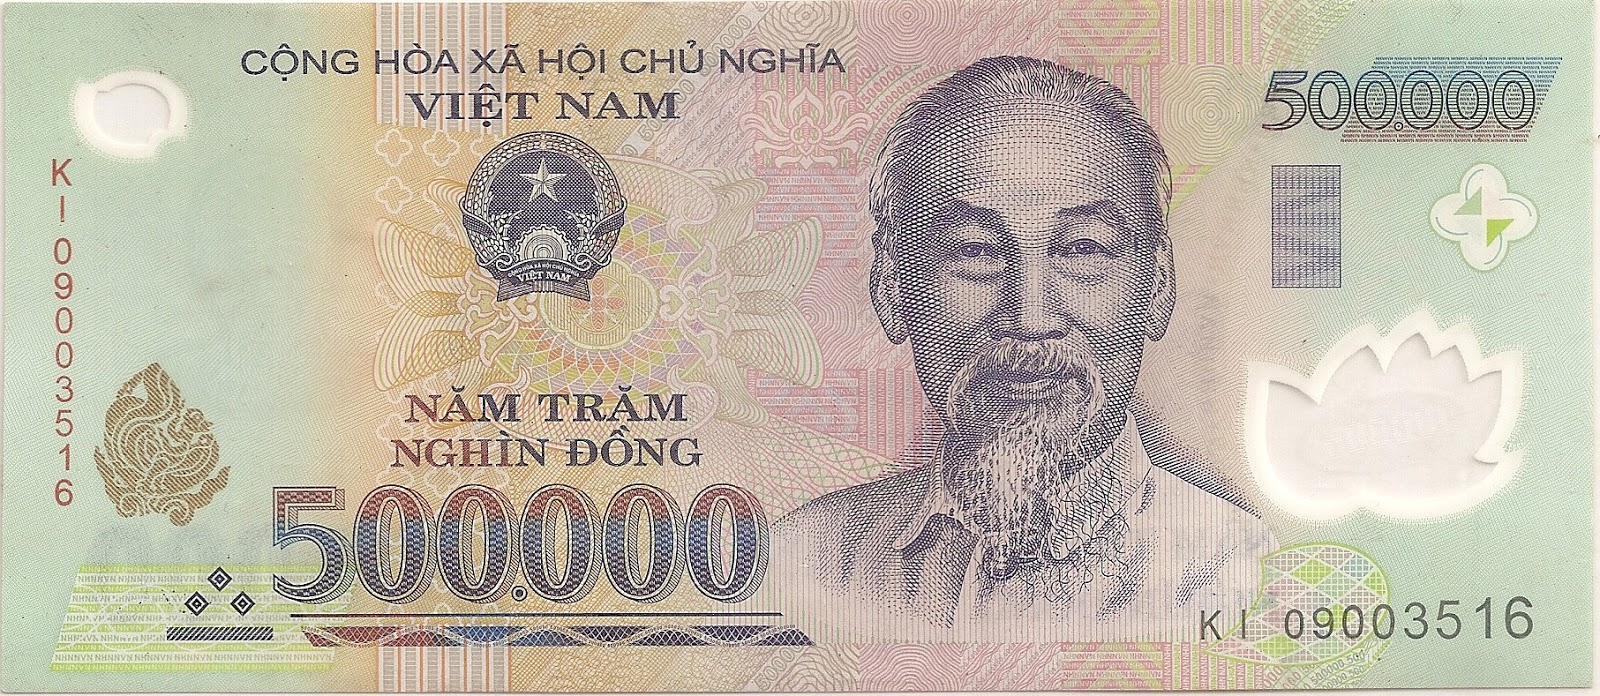 The Front Of 500000 Dong Banknote It Is Also Referred To As Nam Tram Nghin